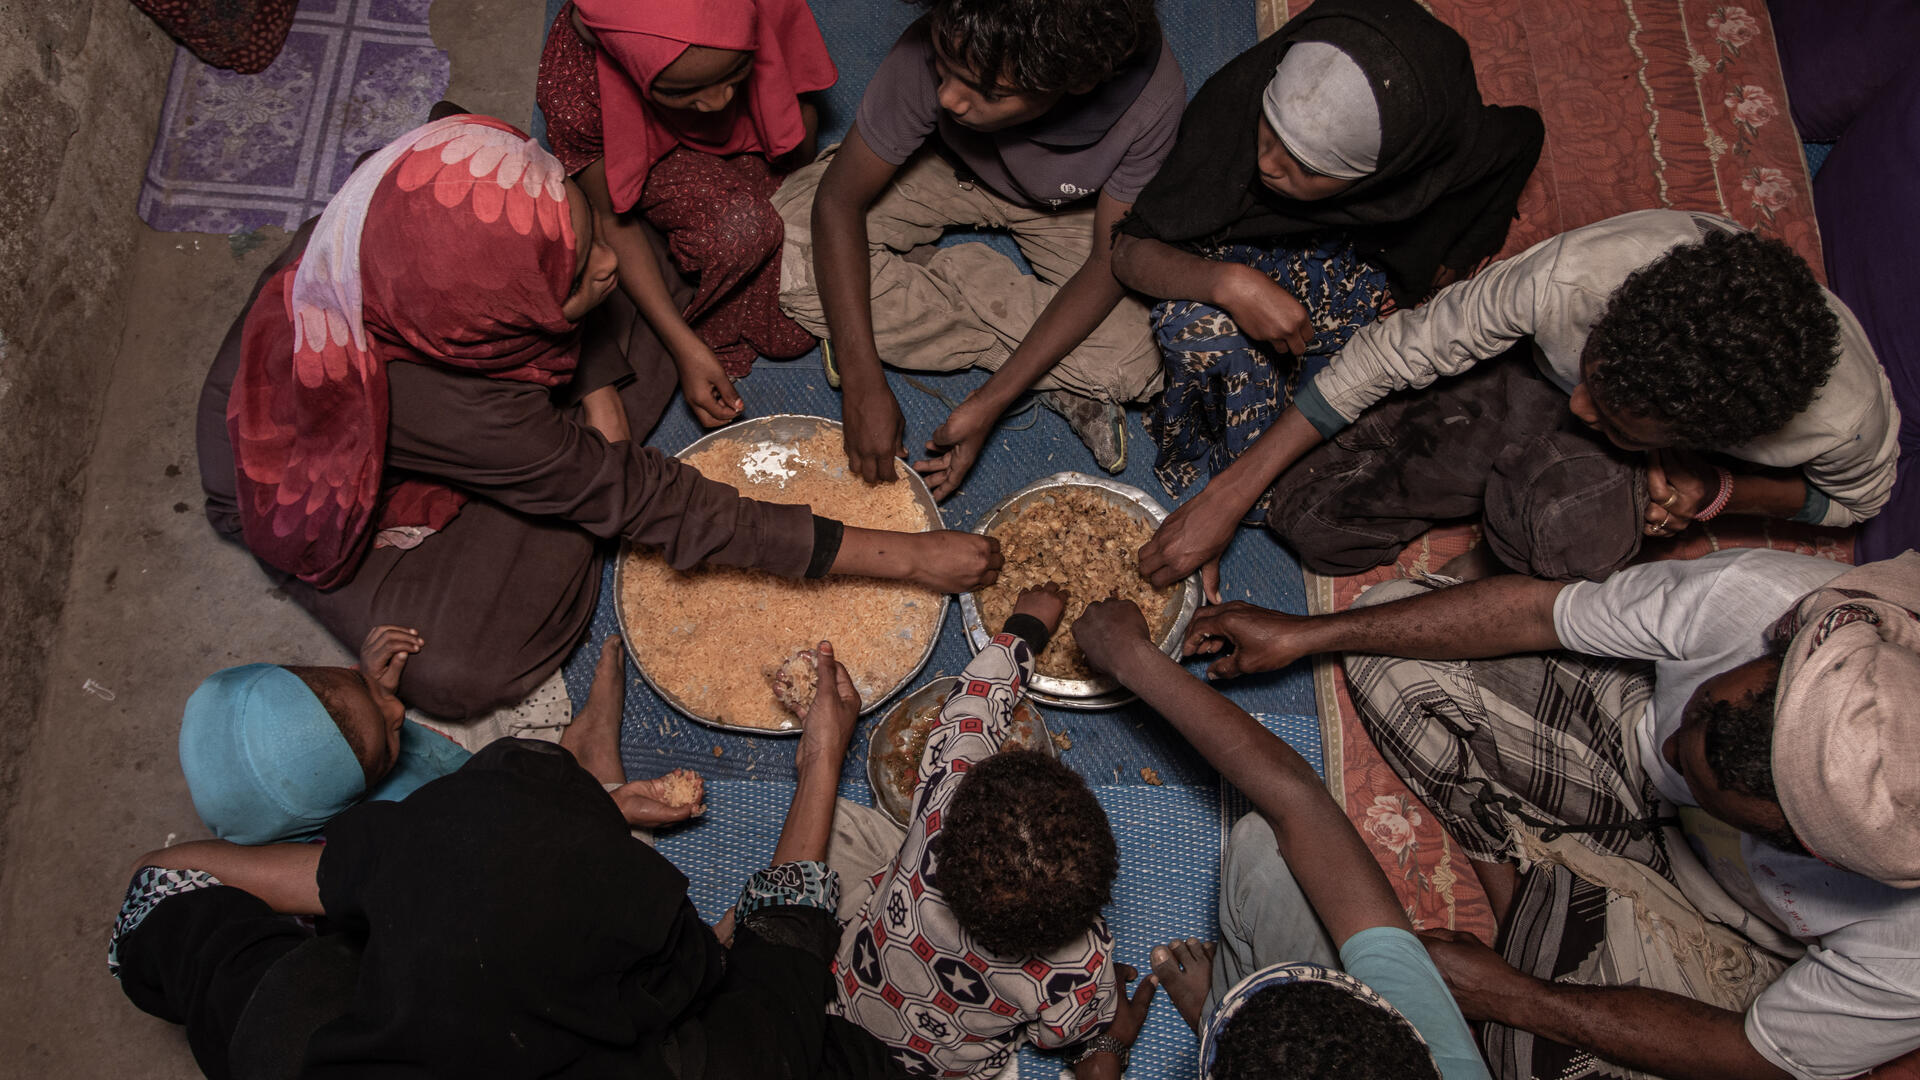 A family in Yemen is seated on the floor around plates of food for a meal.